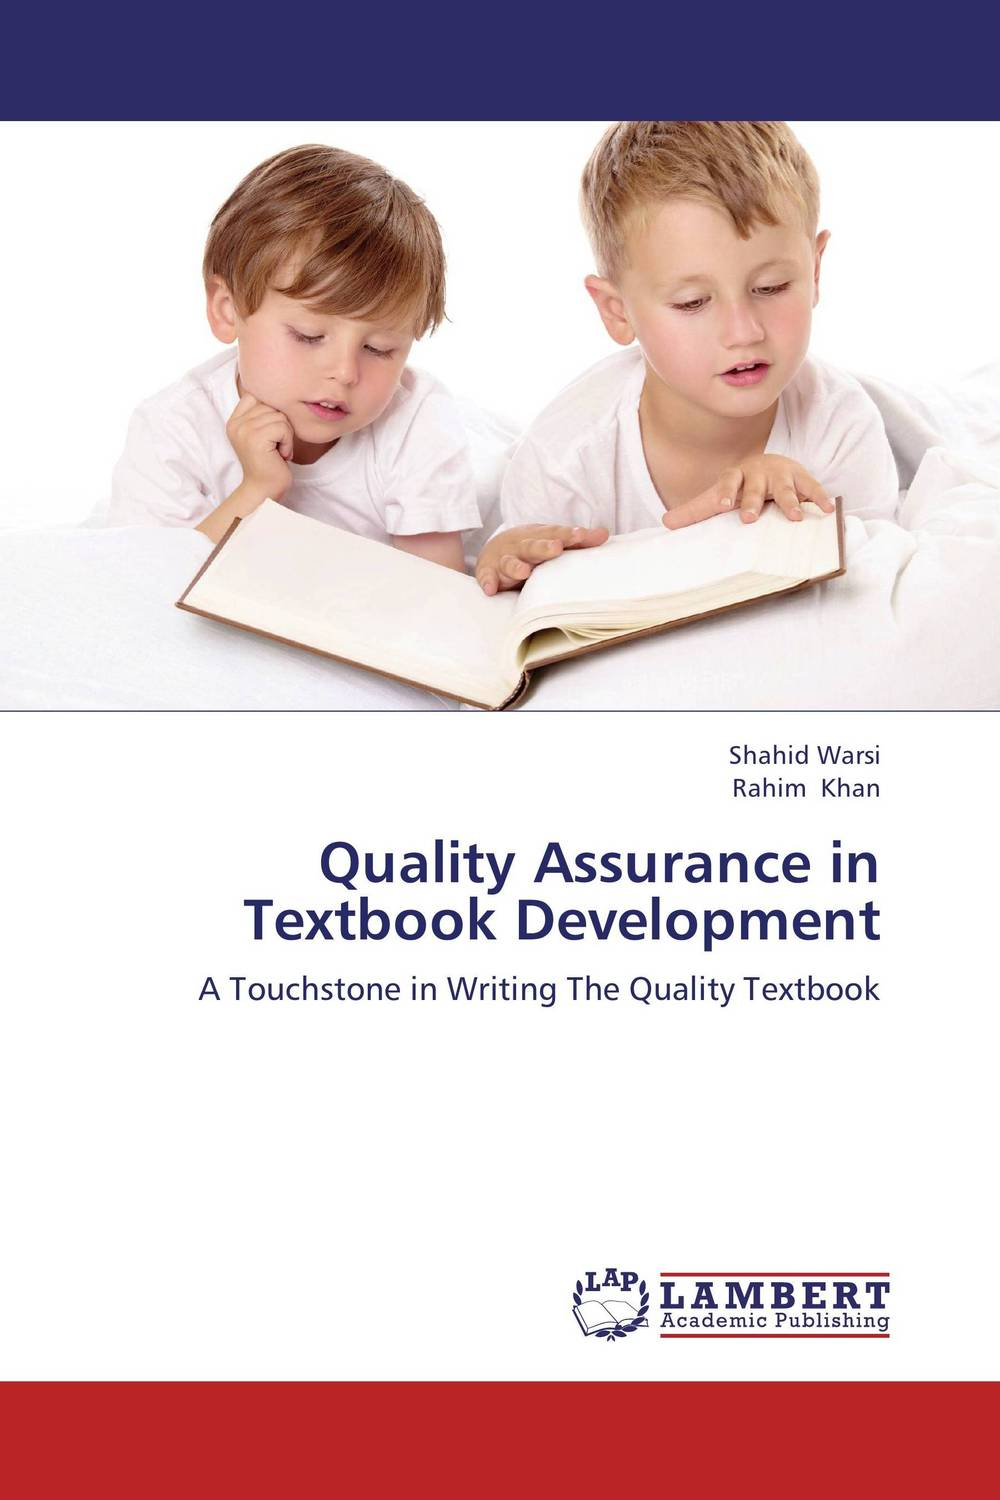 Quality Assurance in Textbook Development quality assurance in textbook development